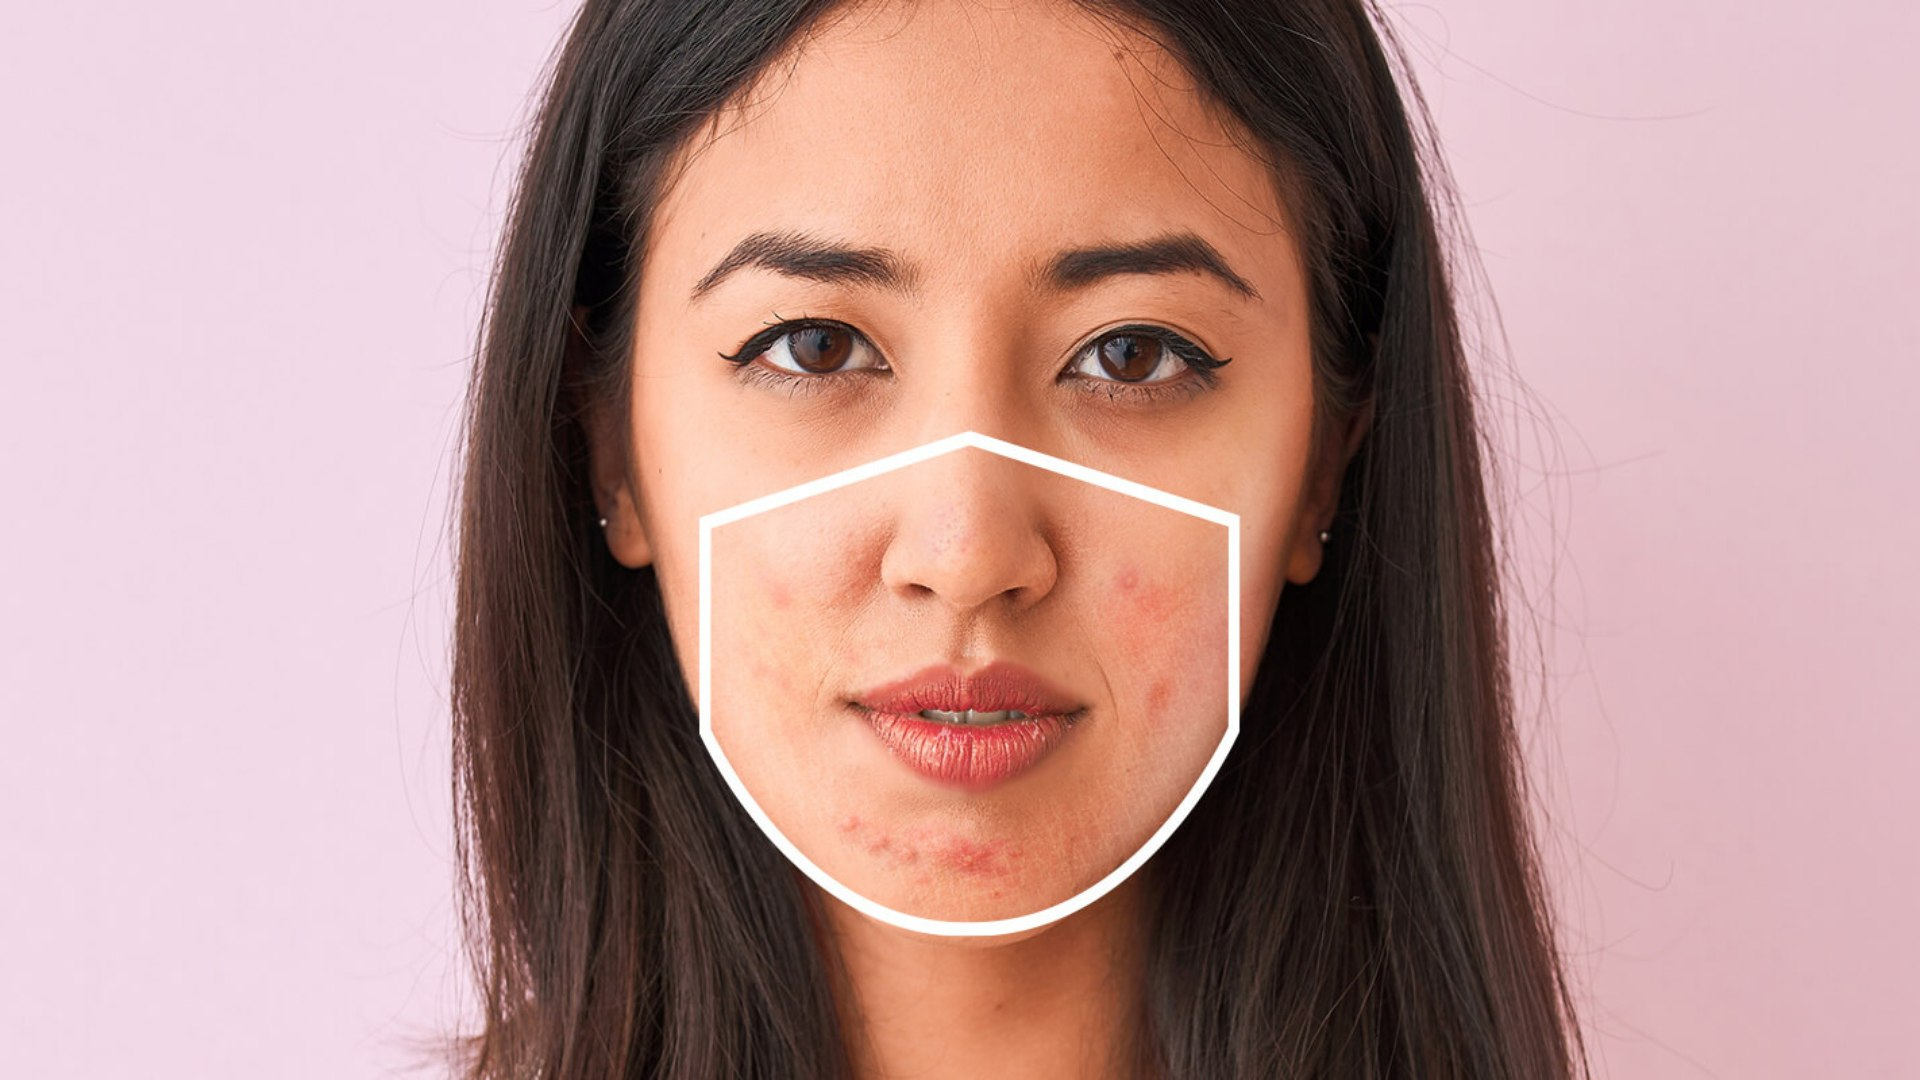 Como as máscaras interferem no aparecimento da acne